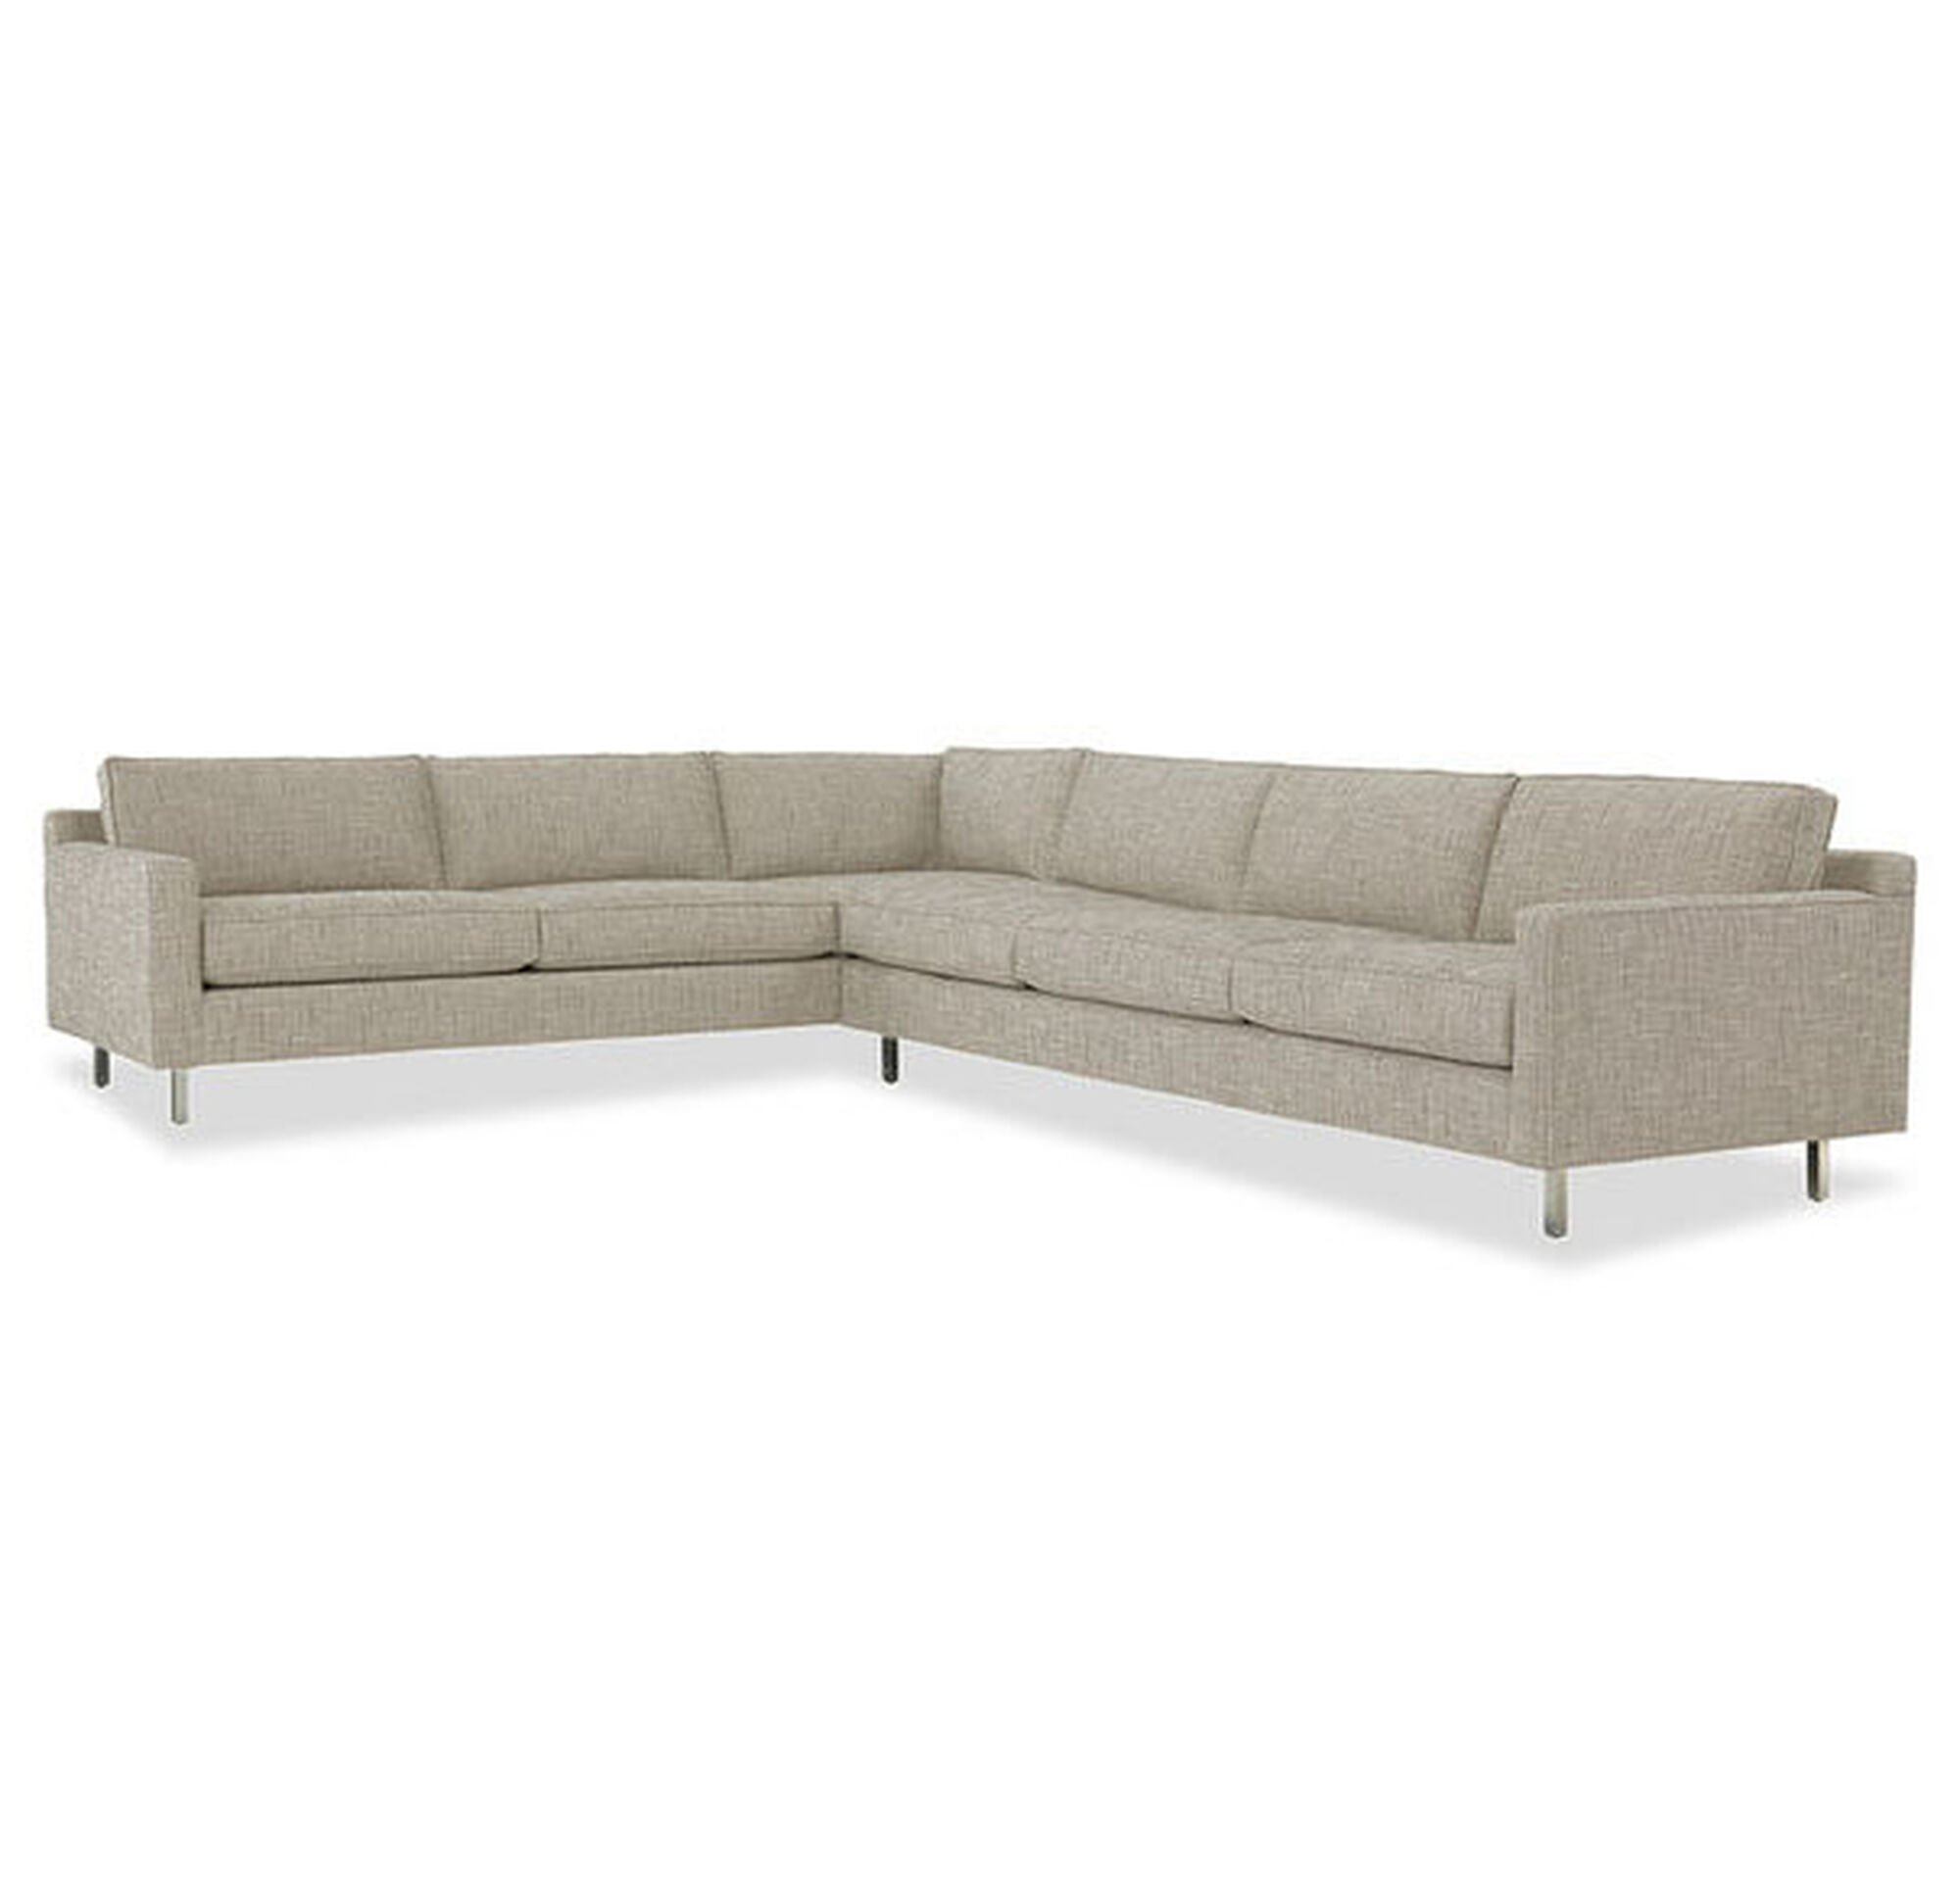 shapes sofa u or shaped sutton sectional and living rooms pin room